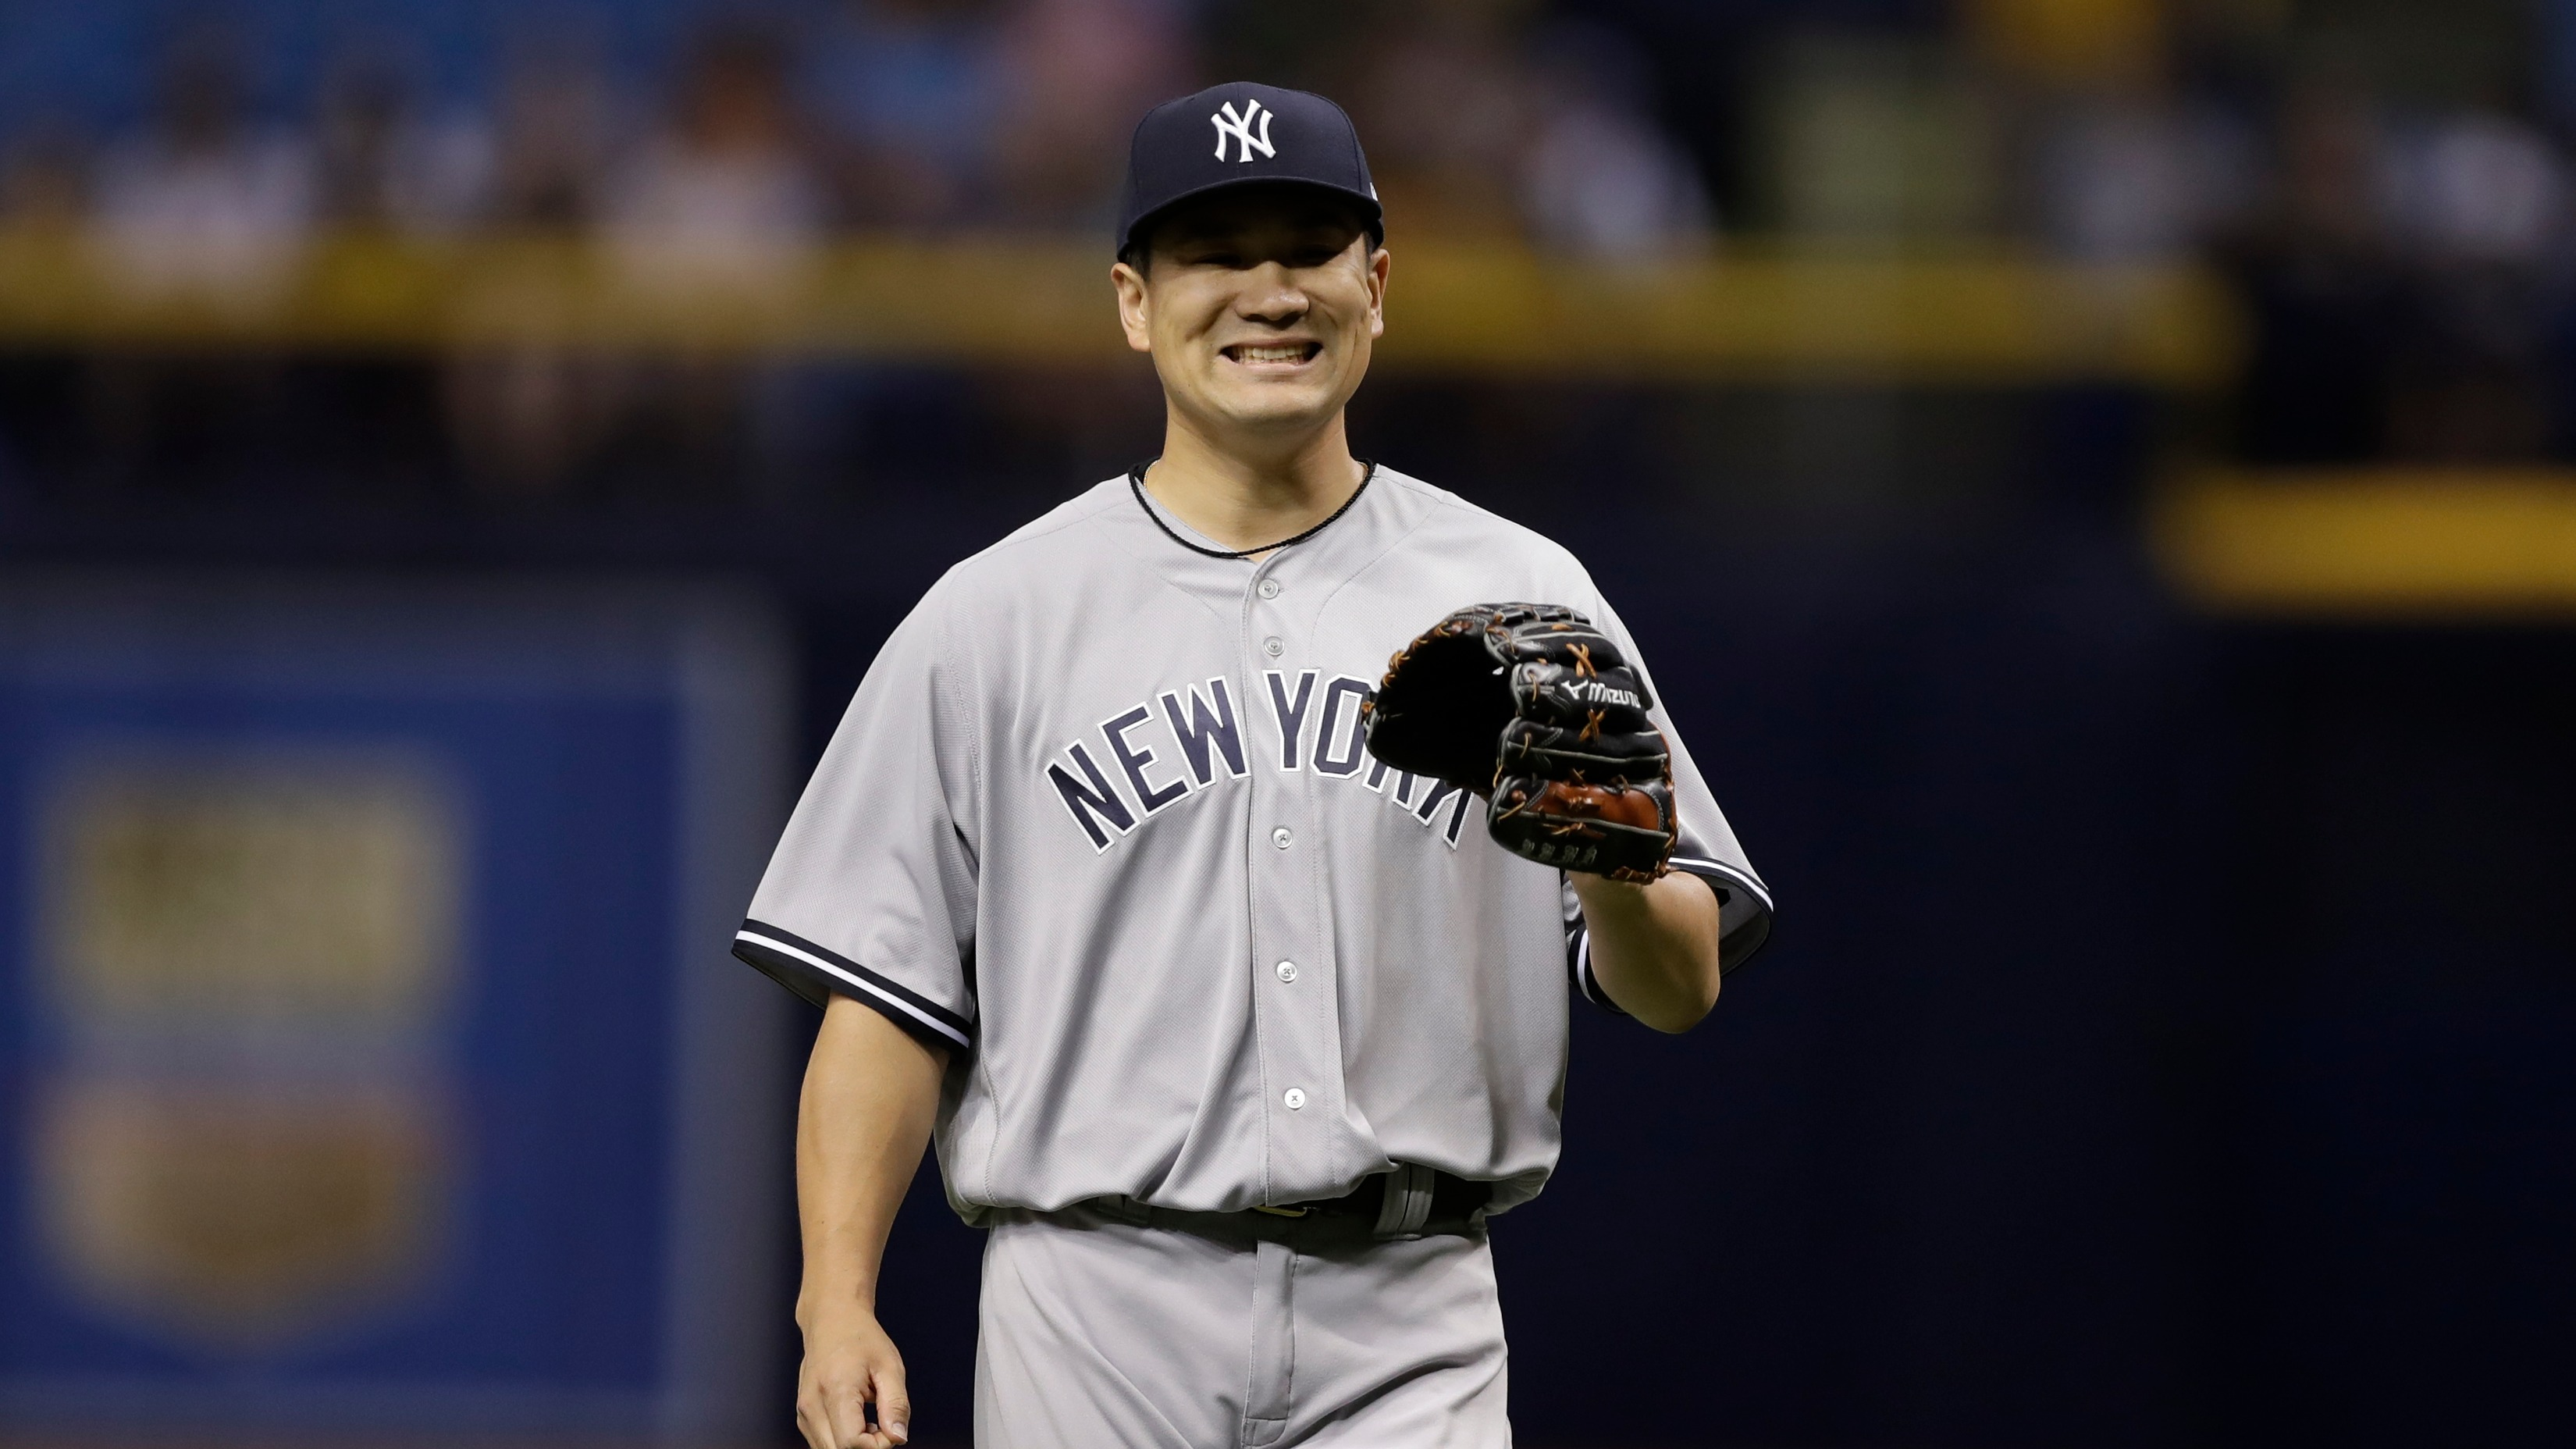 Yankees at Red Sox odds and betting preview: Hot bats turn